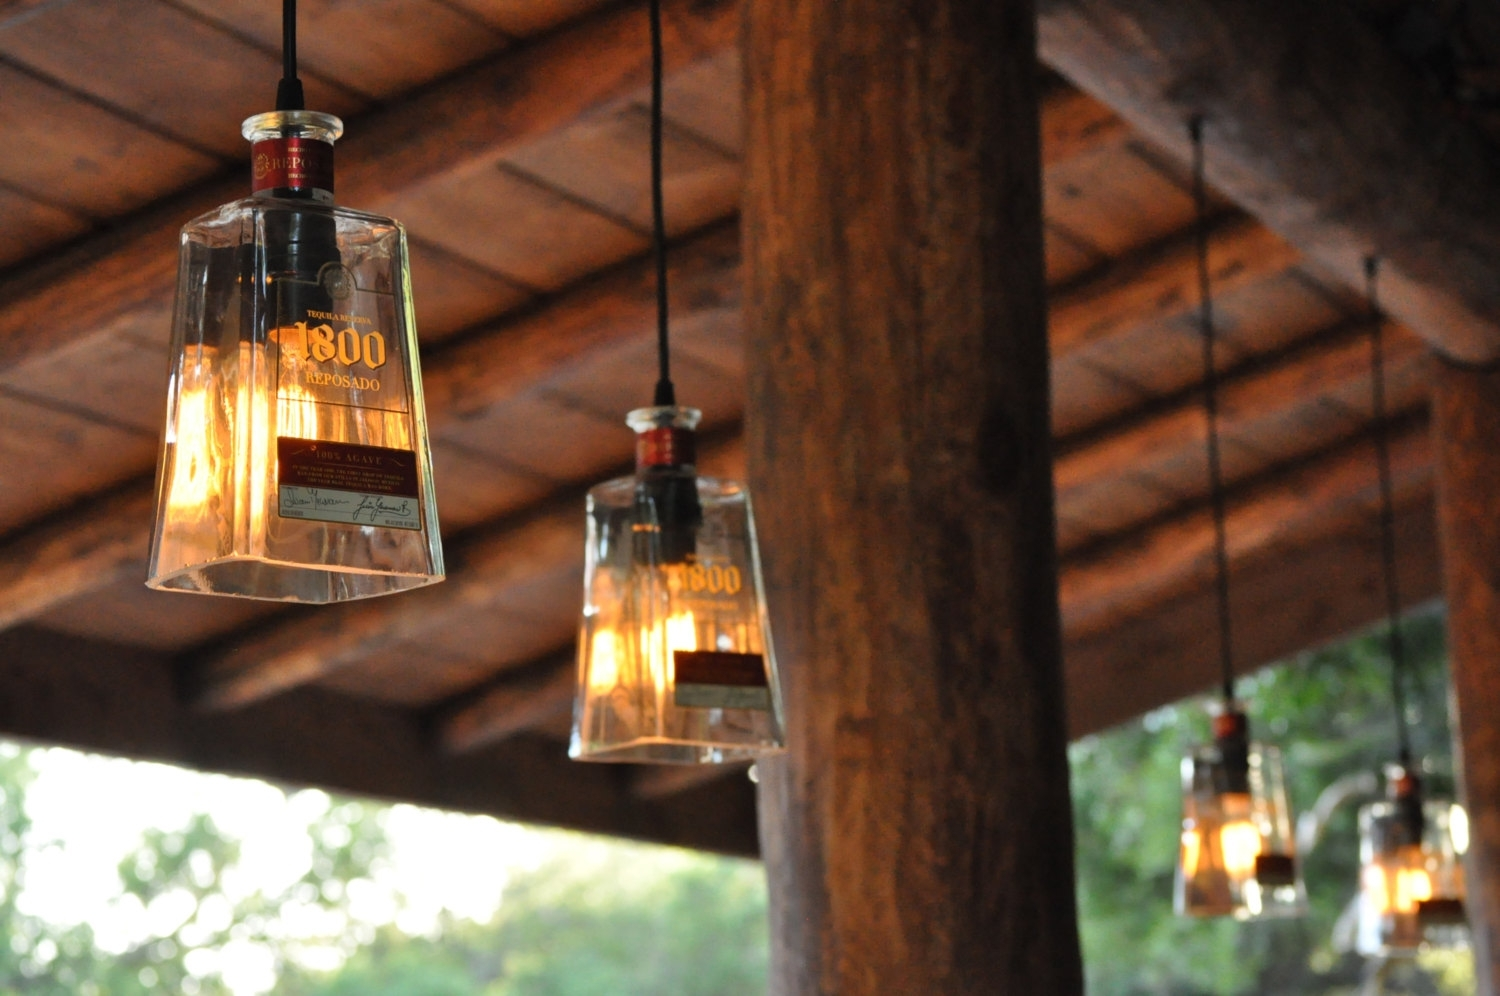 Inspiration about Types Outdoor Hanging Lights Fabulous Tequila Clear Glass Bottle Throughout Outdoor Hanging Bottle Lights (#12 of 15)